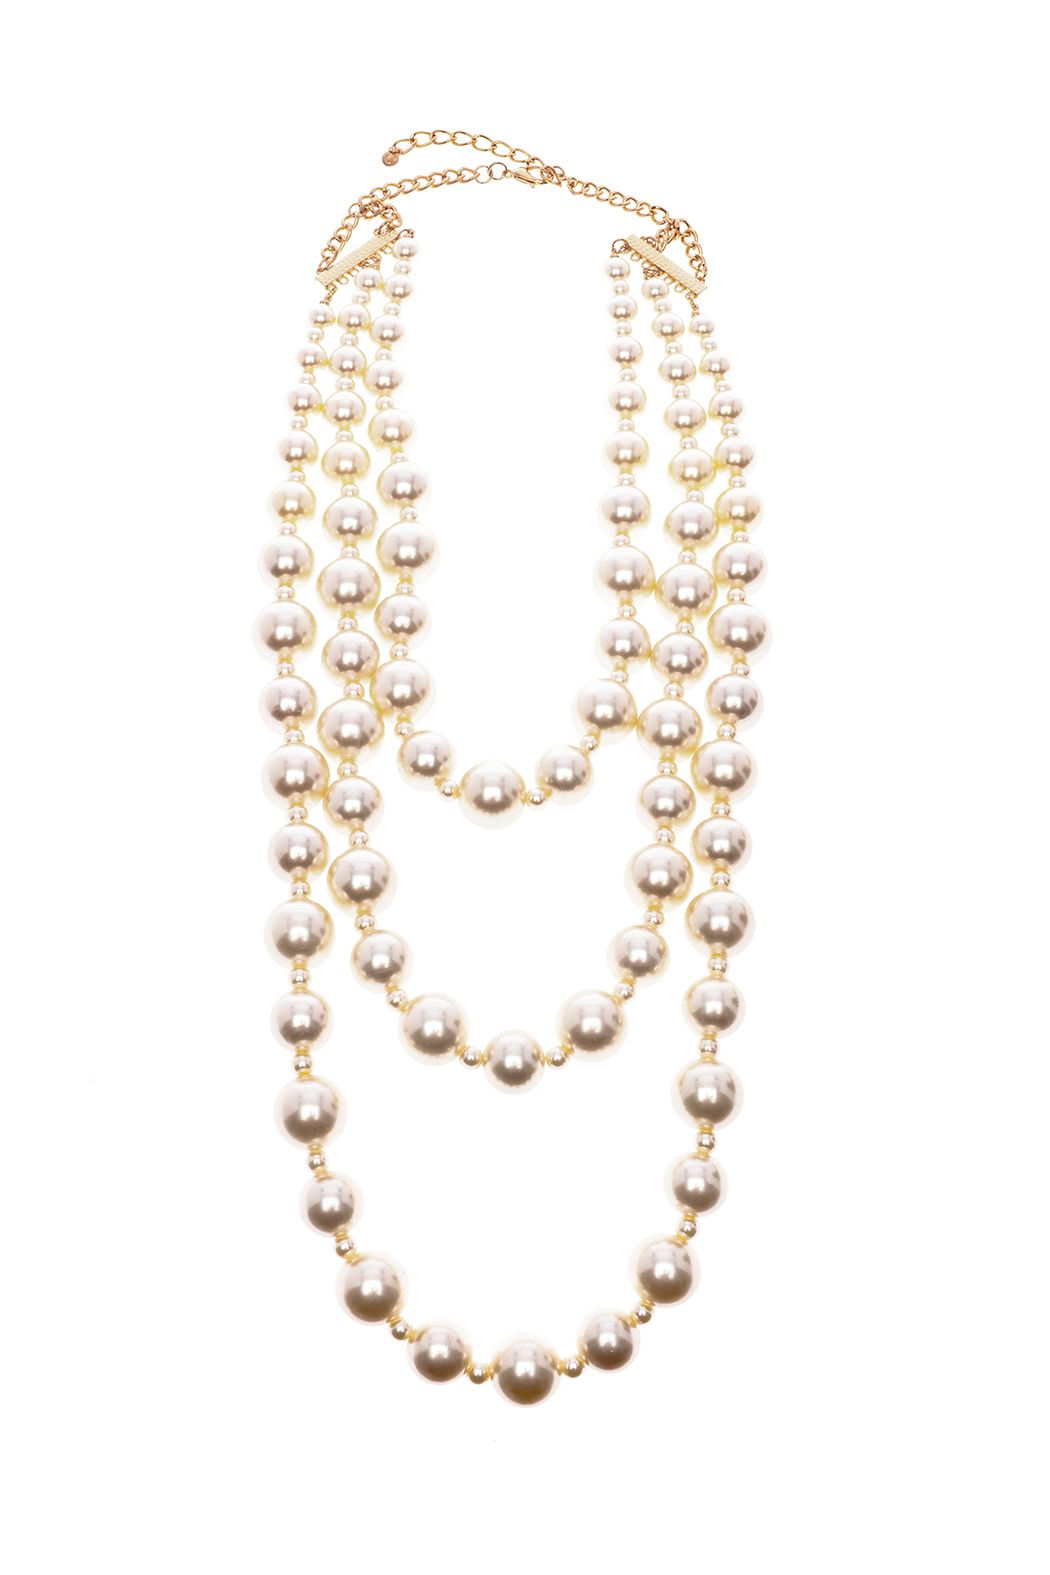 90223102181cc6 Three strand pearl necklace is just the statement piece for that fabulous  outfit or party. It is adjustable and in between white/white and creamy.  Mega ...